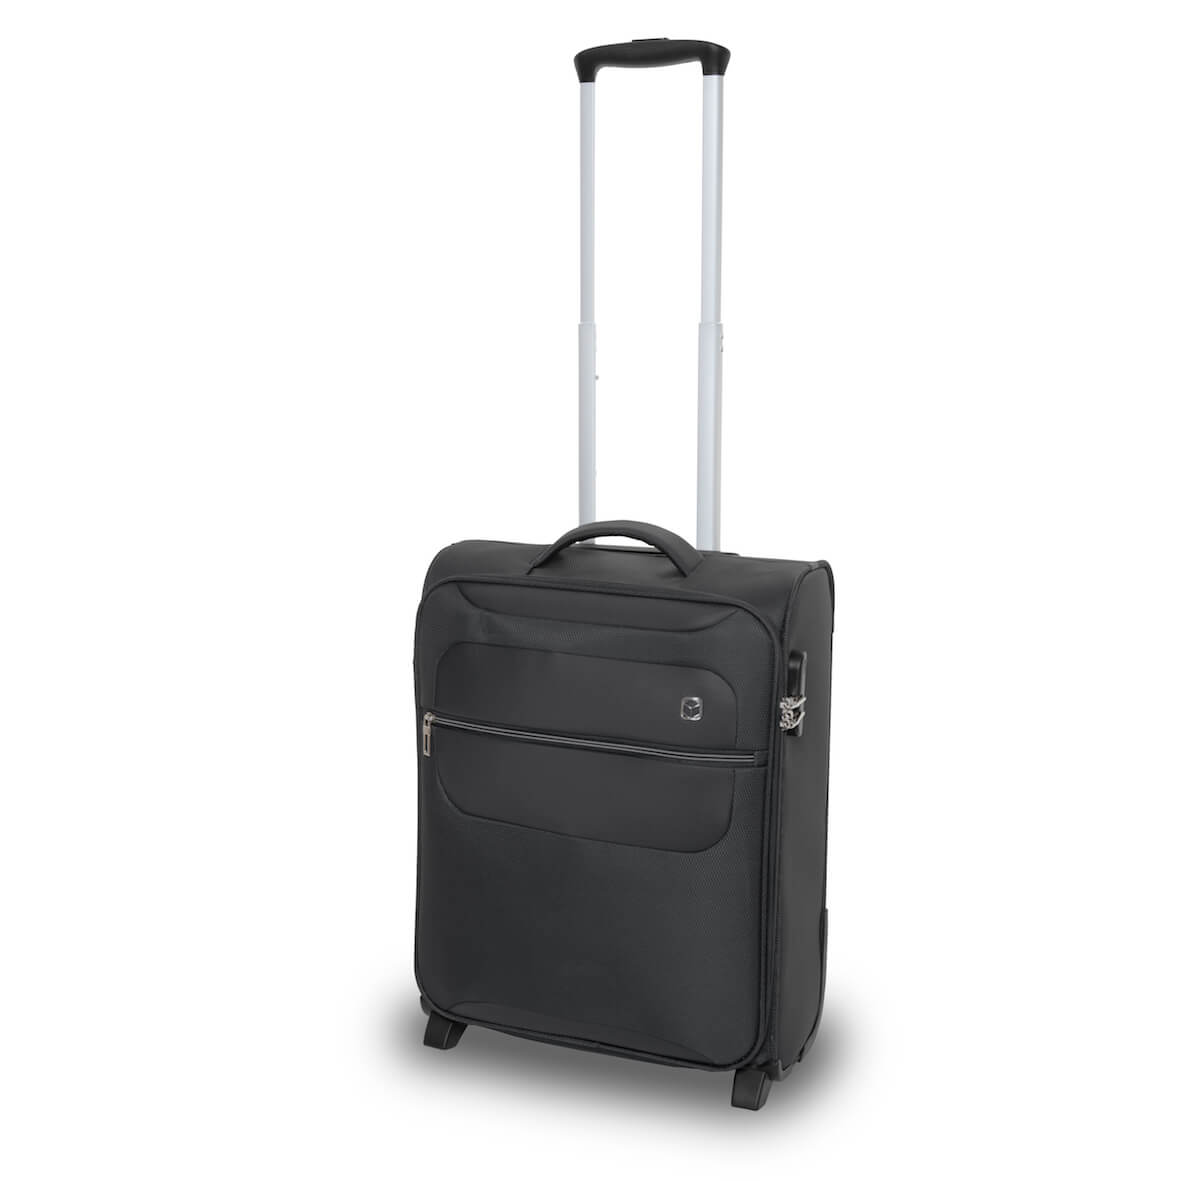 QUBEd Mode 55cm 2-Wheel Upright Suitcase